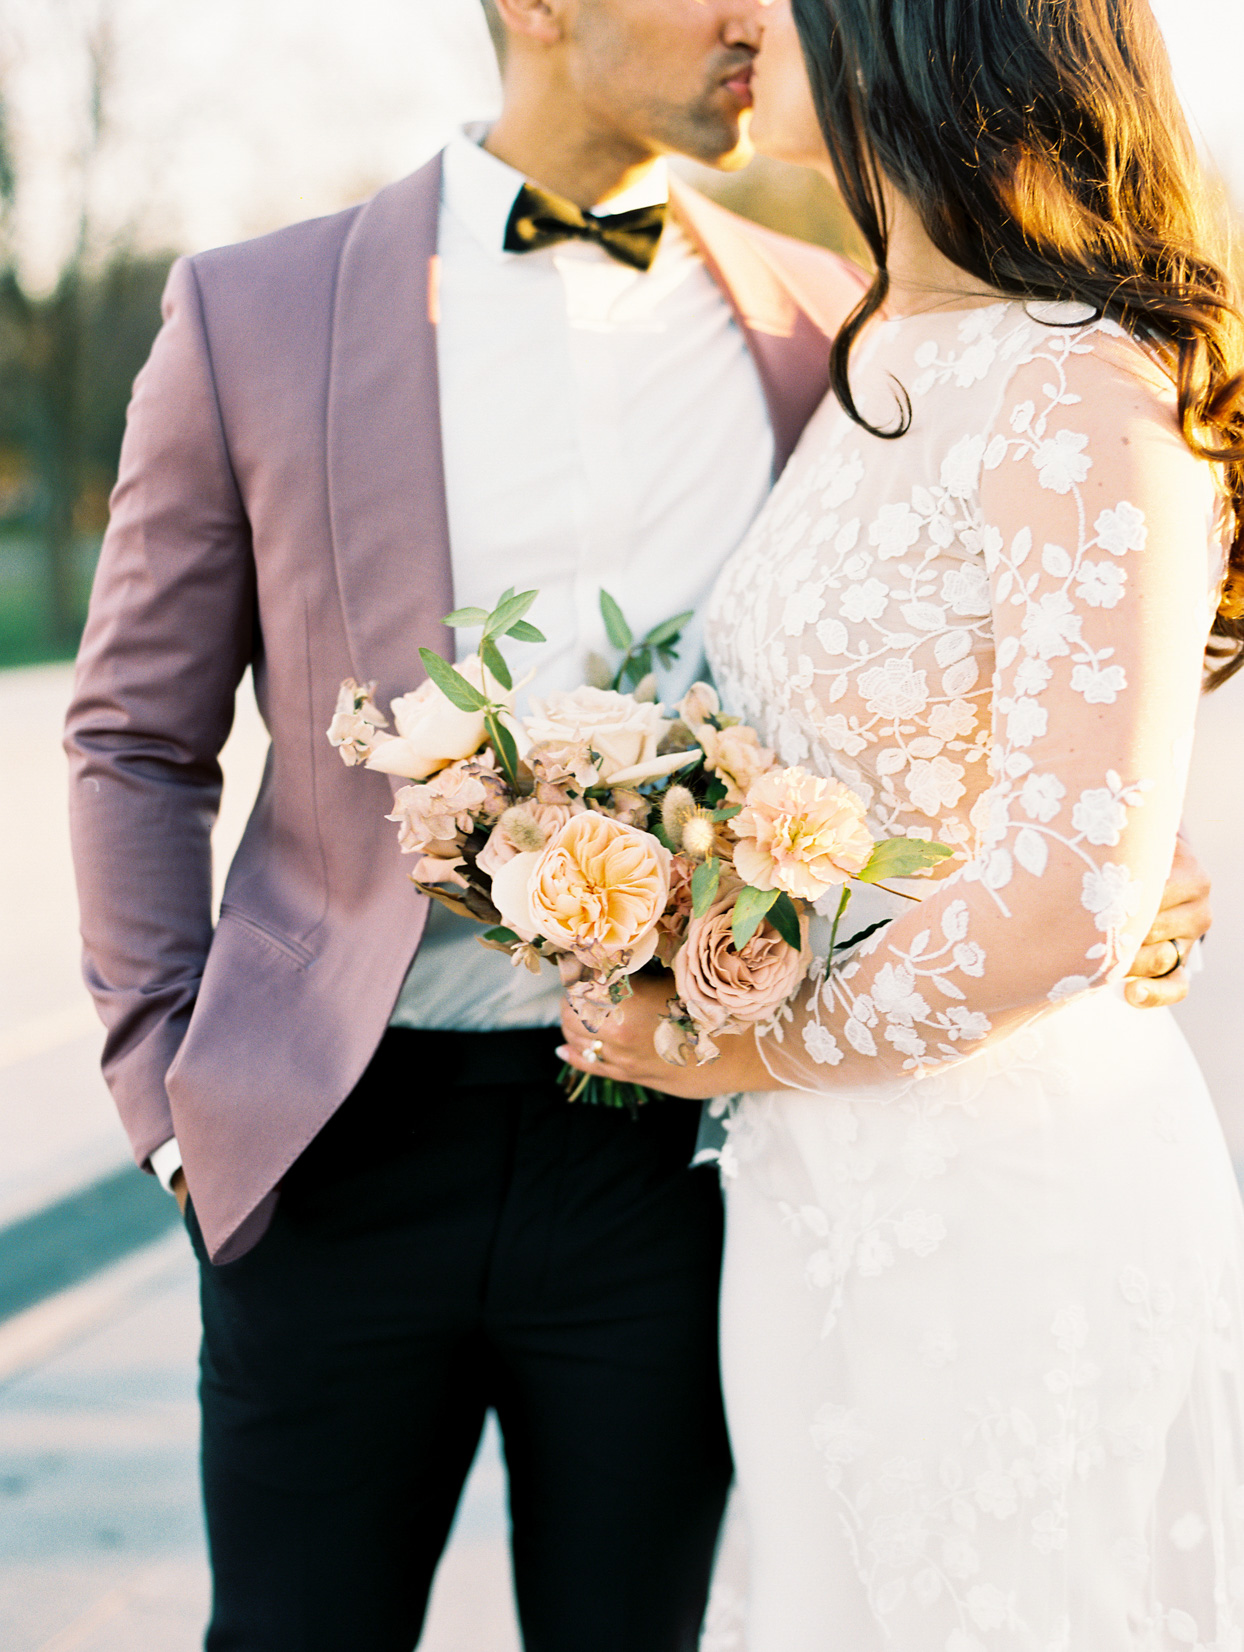 bride and groom kiss while bride holds blush toned floral wedding bouquet